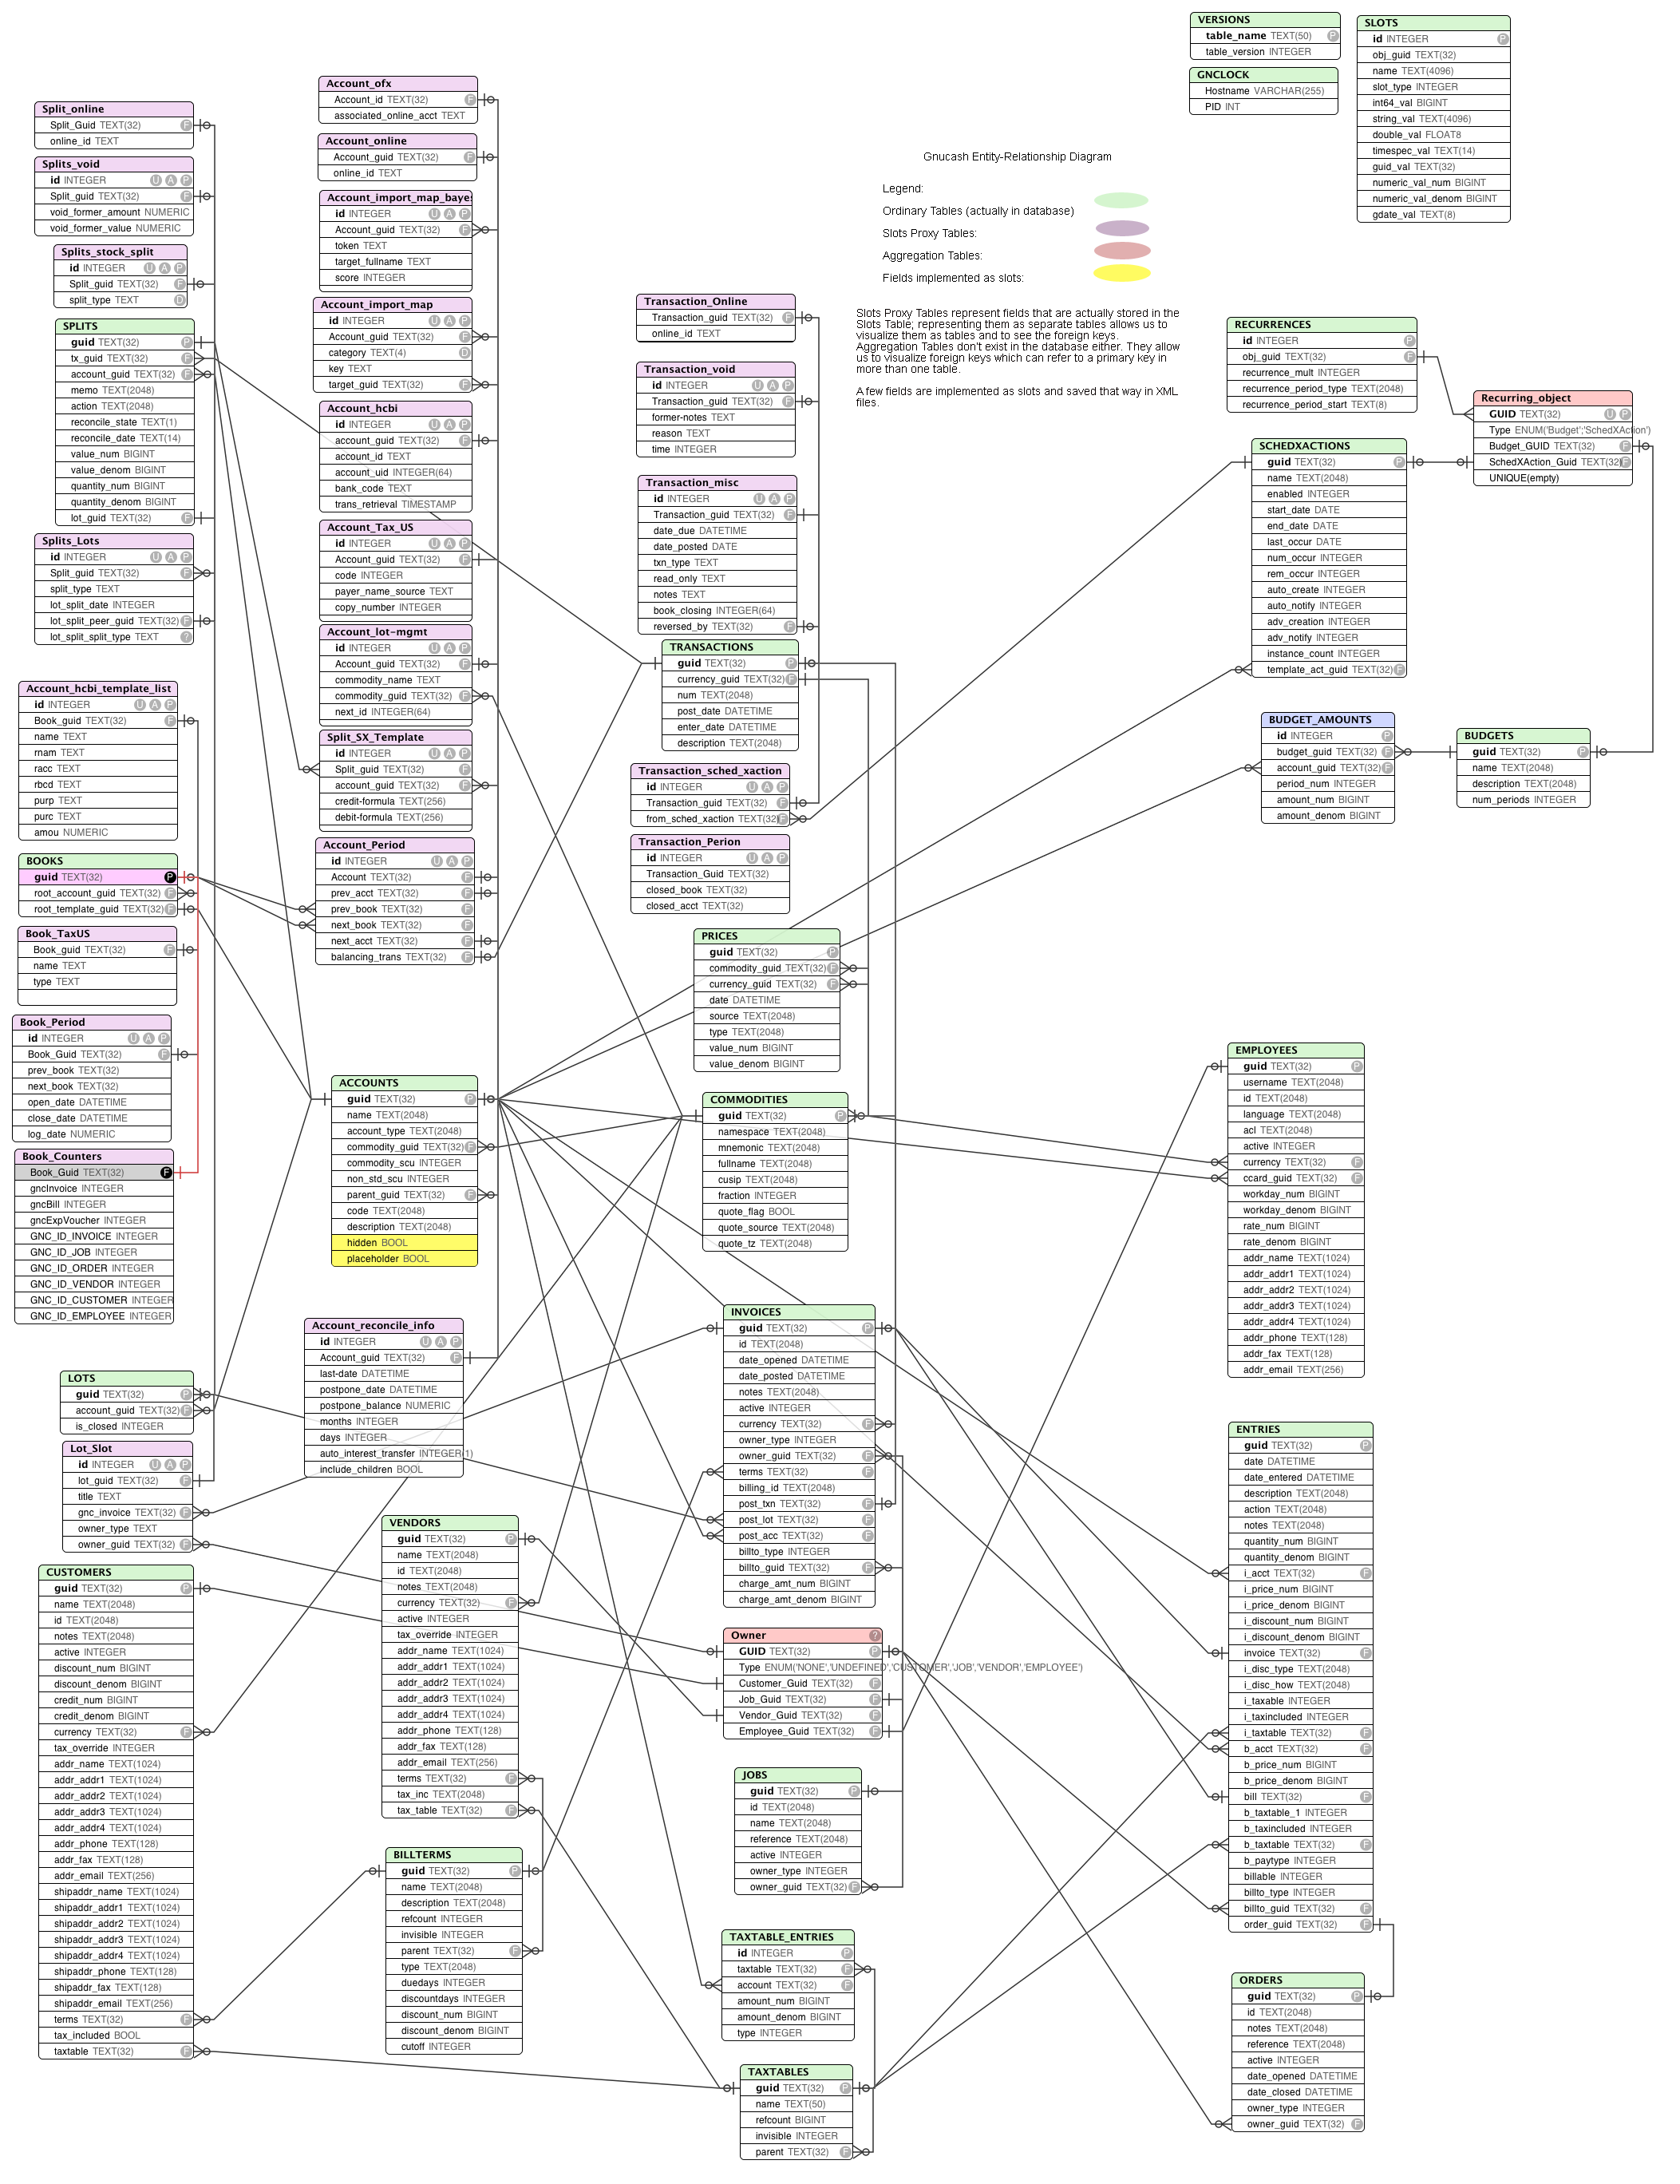 Sql gnucash this entity relationship diagram ccuart Gallery